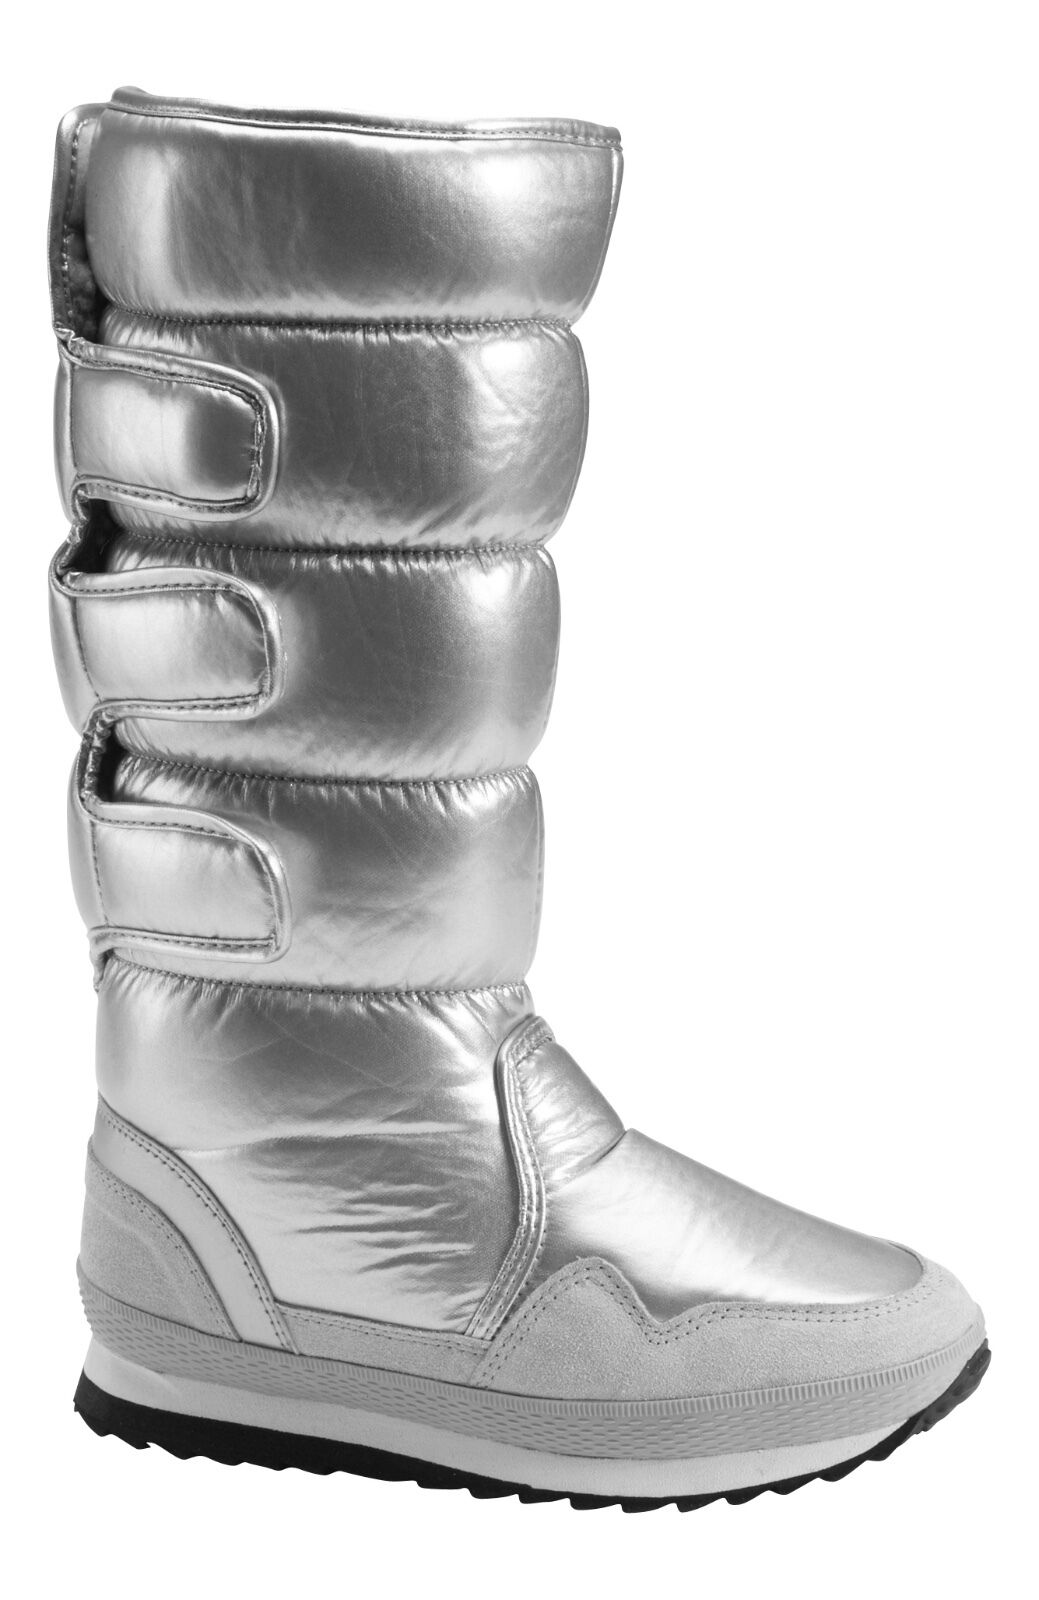 LADIES SUPER WINTER WARM FUR LINED MOON SILVER SNOW BOOTS SIZE 7 7.5